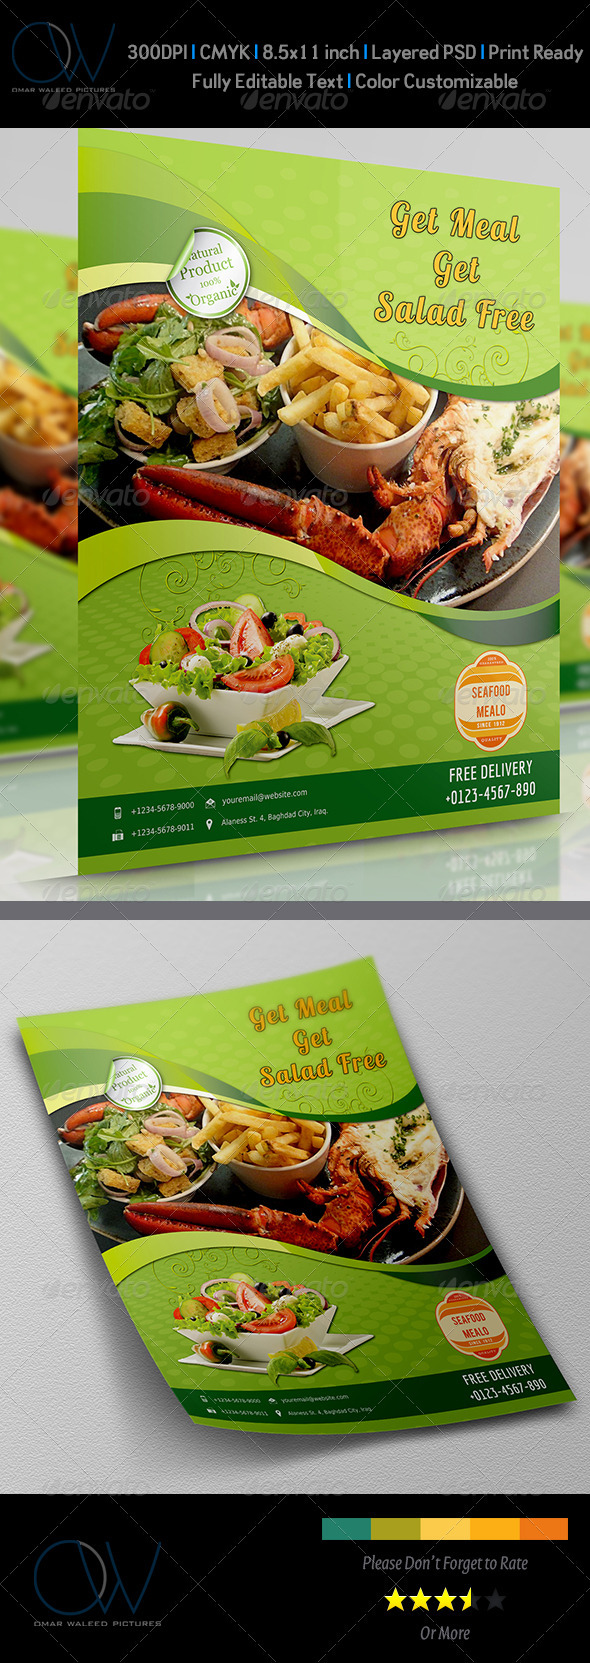 Sea Food Flyer - Restaurant Flyers